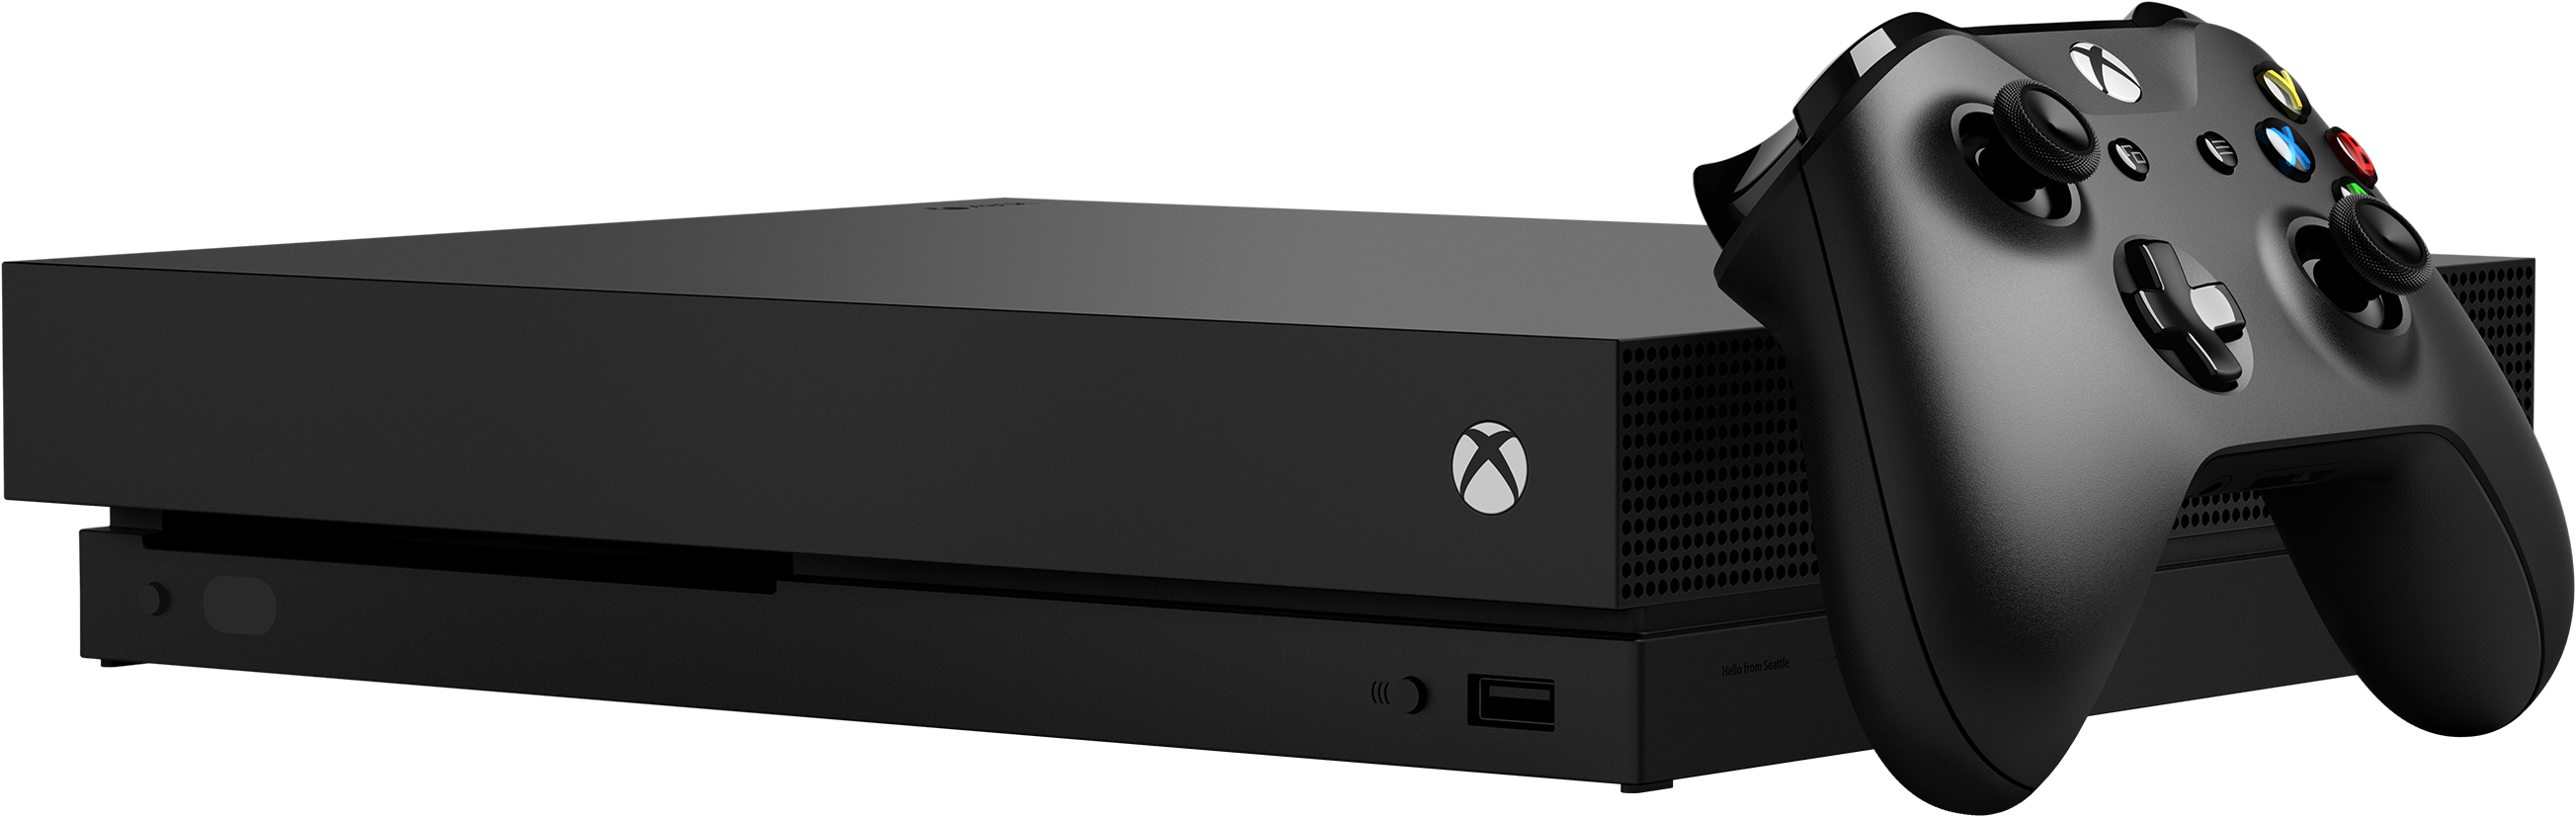 Front of Xbox One X console with controller